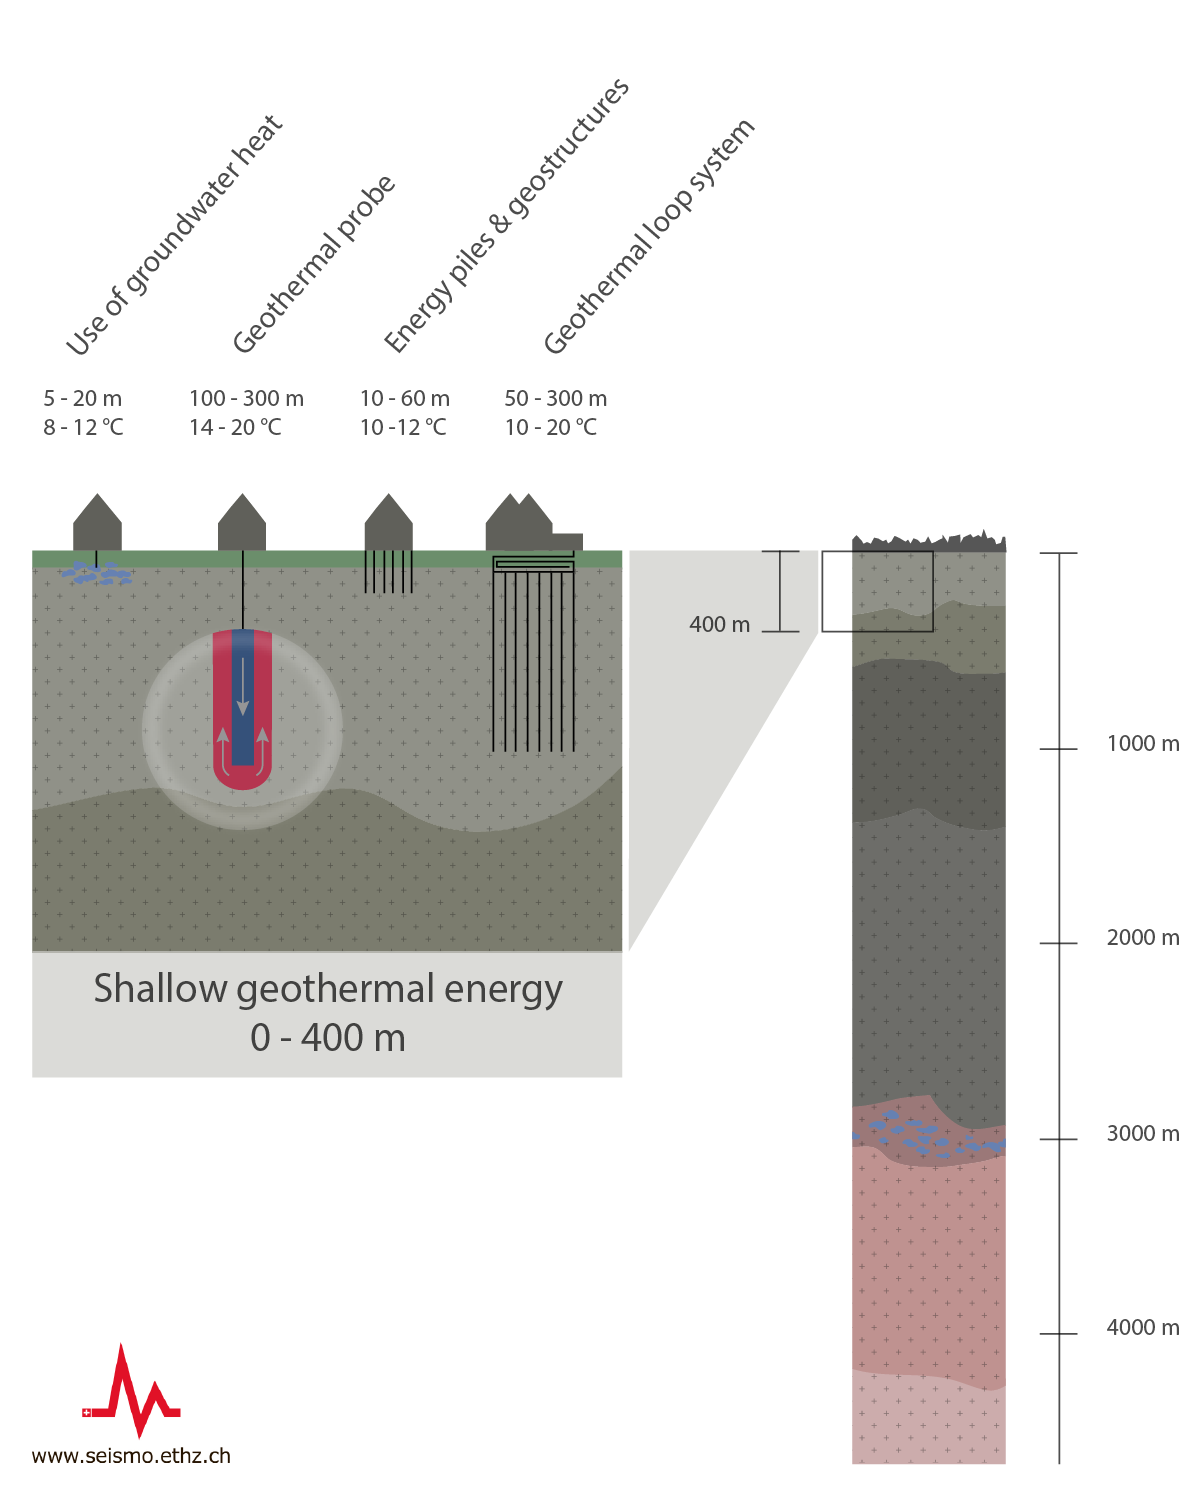 Shallow geothermal energy